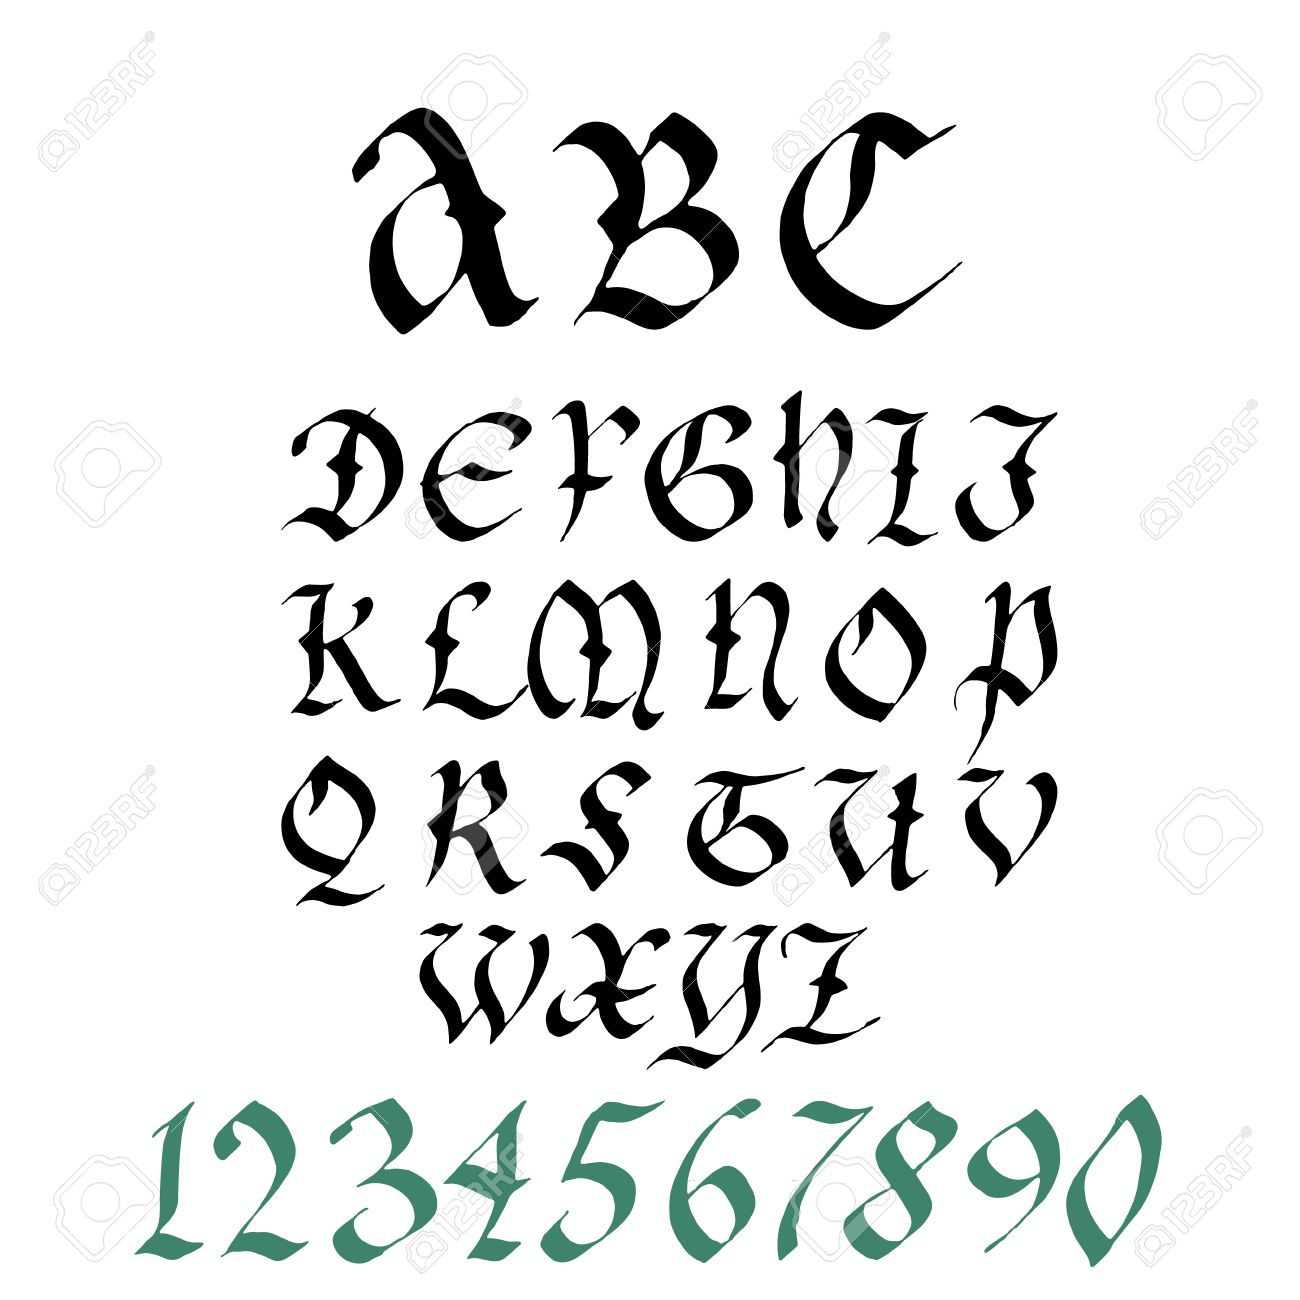 Hand Drawn Gothic Ink Pen Artistic Font Set Includes Capital Letters Numbers Stock